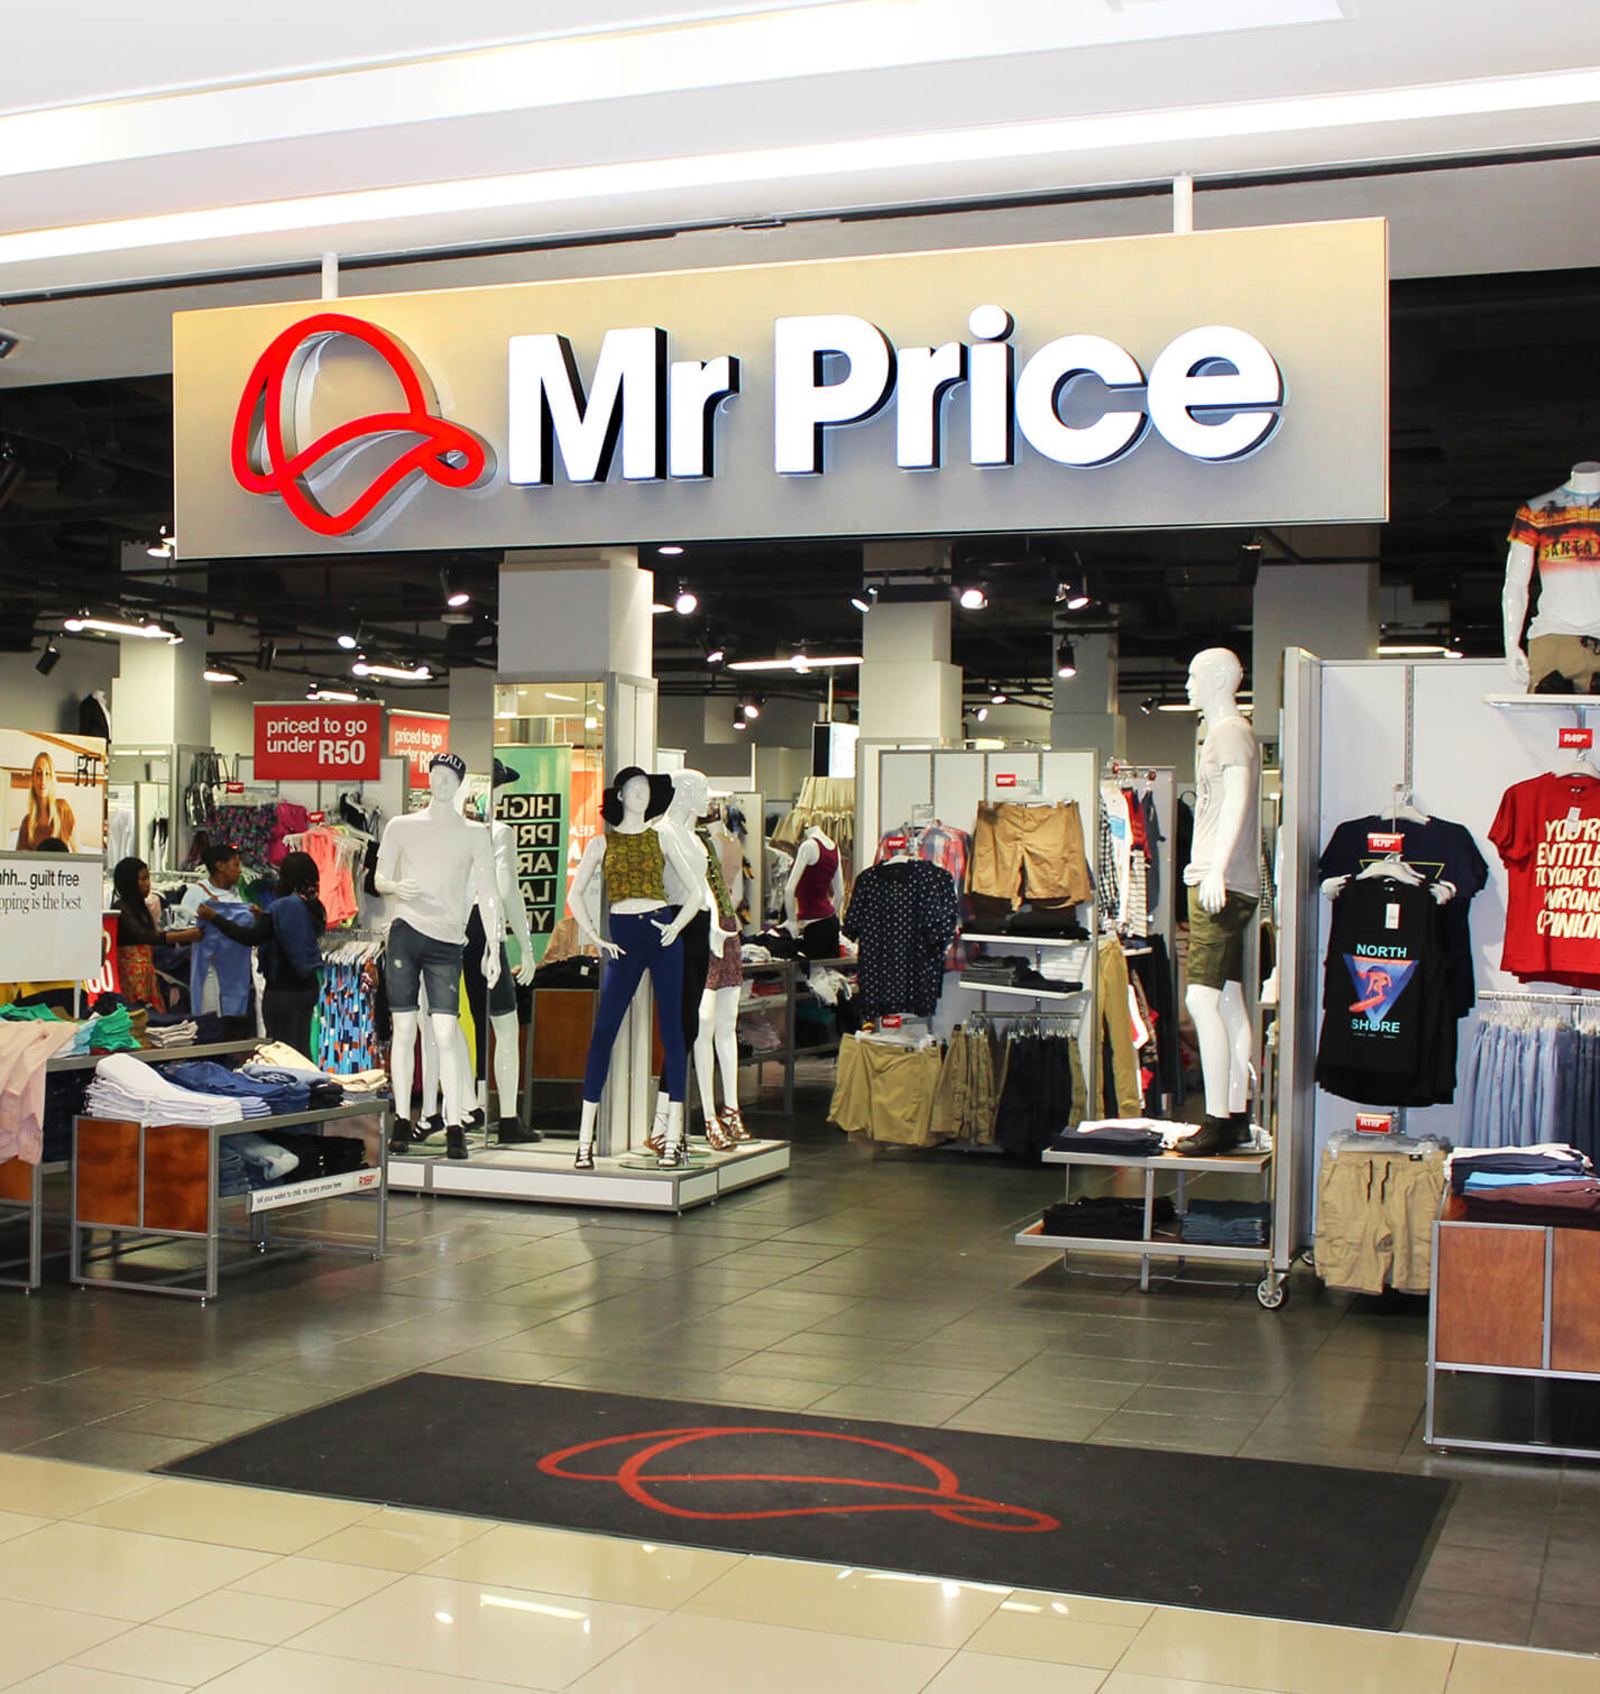 South African retailer Mr Price debunks speculation to buy Edcon's Jet